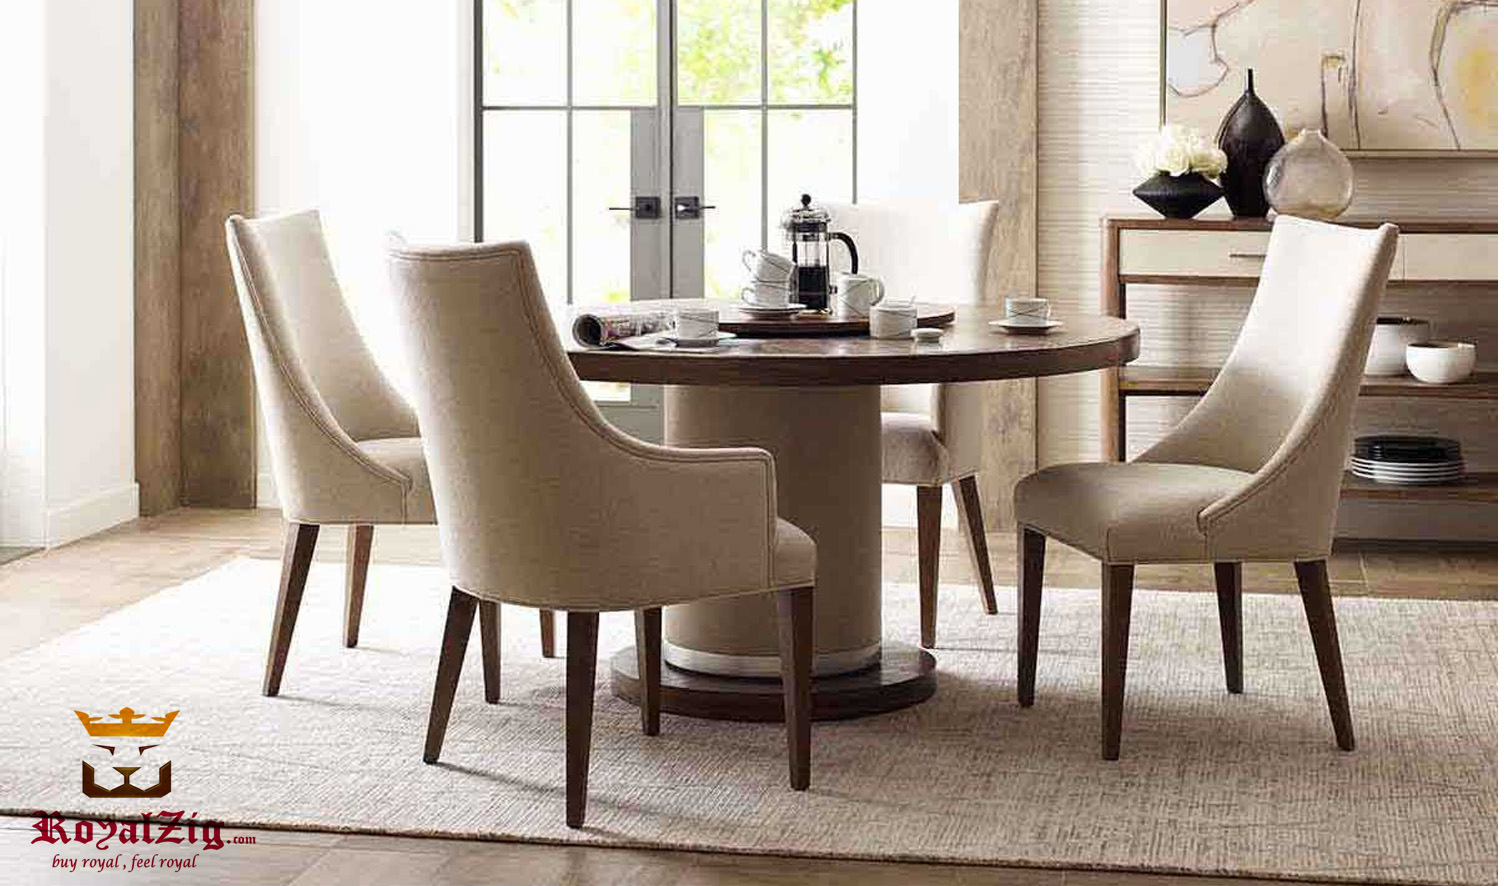 Radlett Modern Luxury 4 Seater Round Dining Table